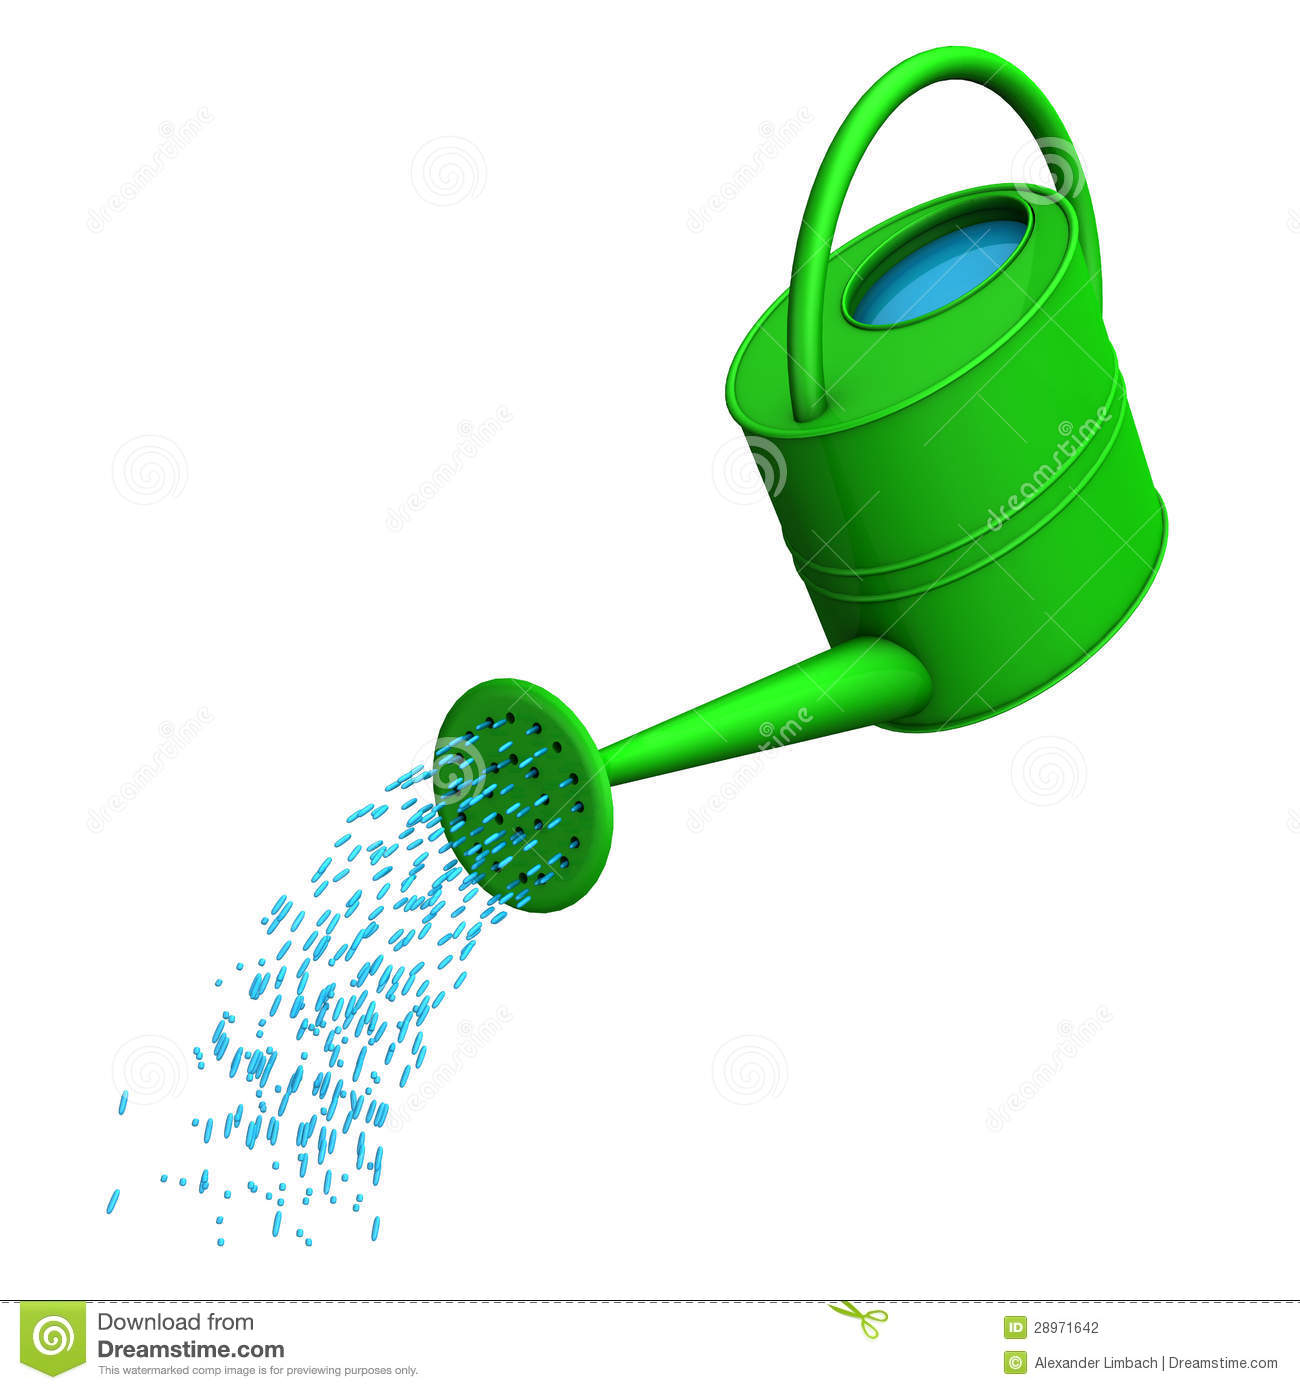 Watering Can Clipart Black And White - More information